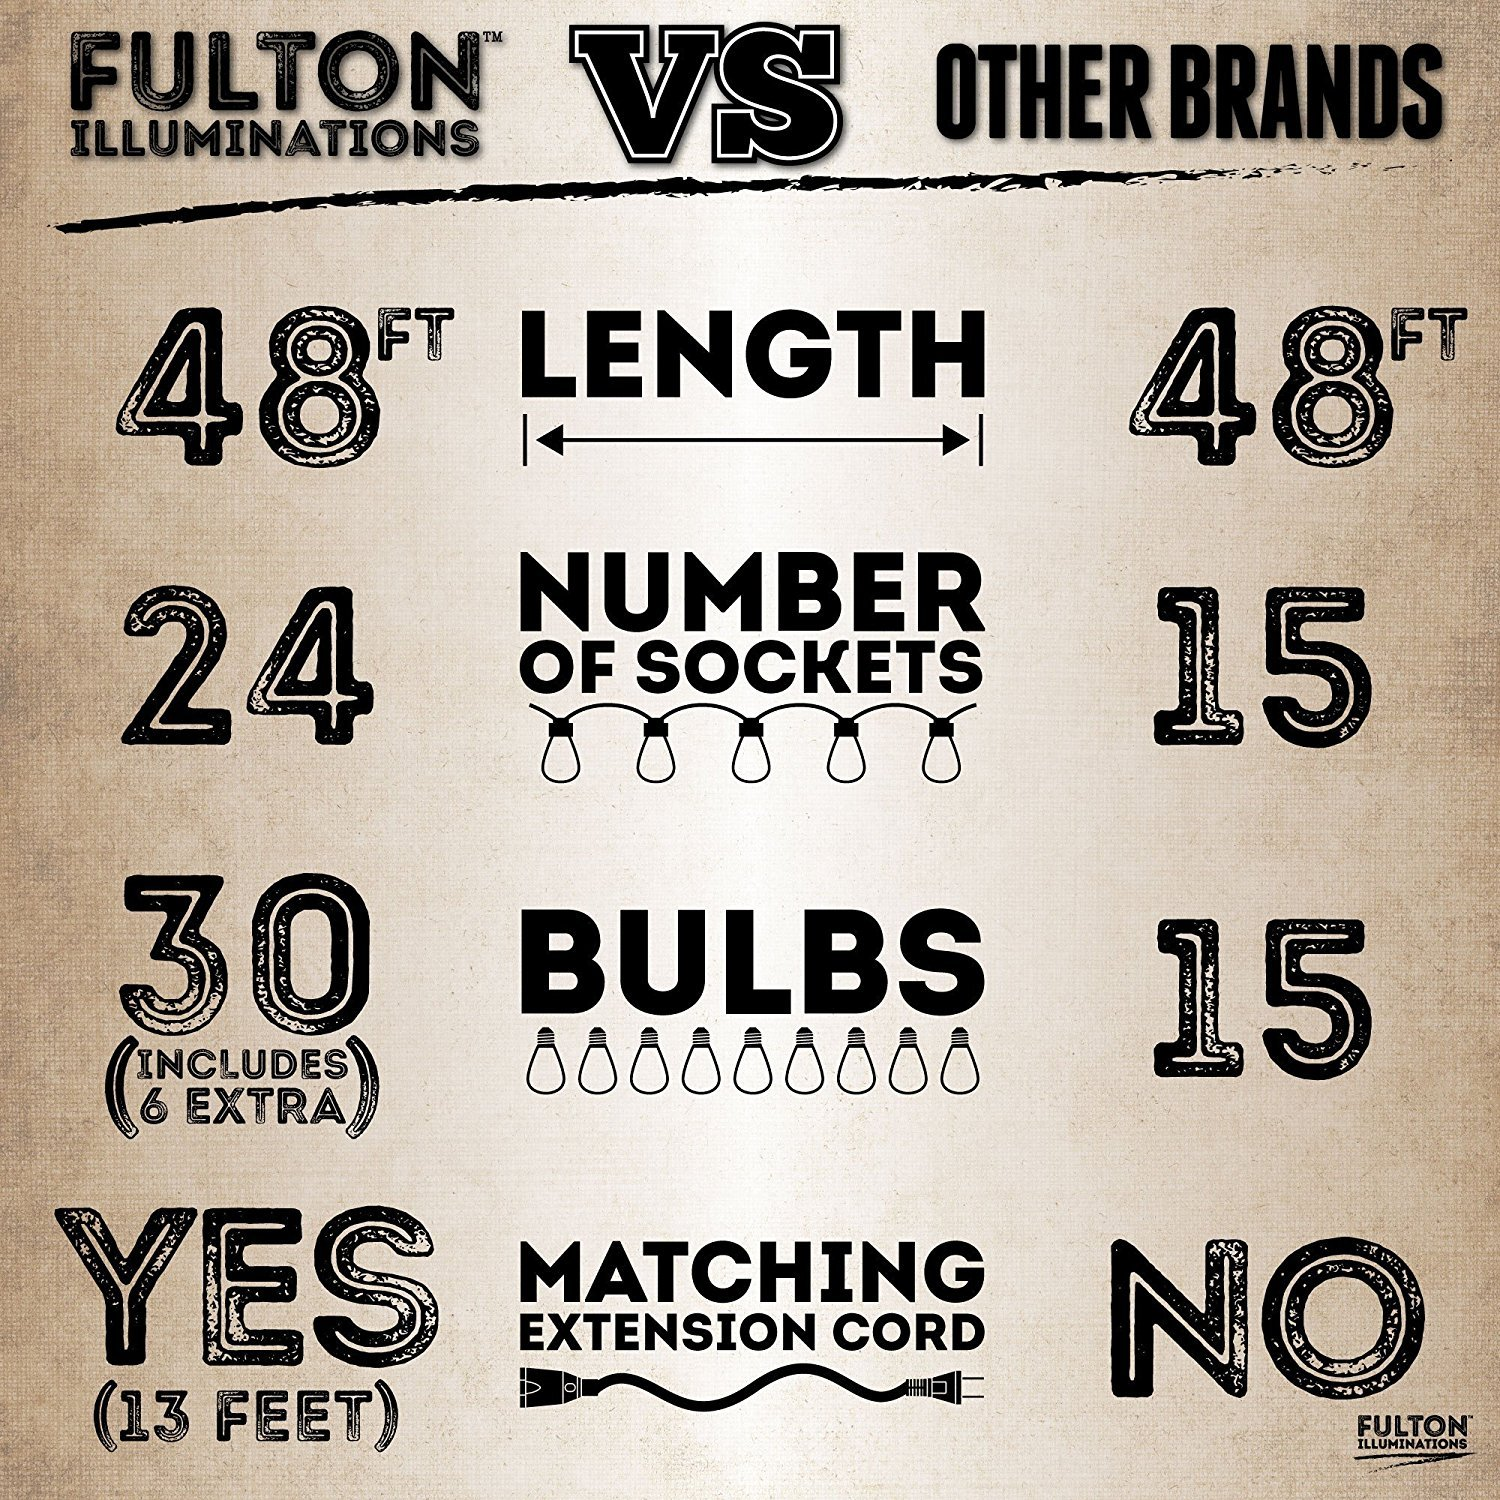 Fulton Illuminations S14 24 Bulbs Outdoor String Lights with 6 Extra Bulbs and 13 Ft Extension Cord, 48 Feet - Commercial Weatherproof Patio String Lights by Fulton Illuminations (Image #2)